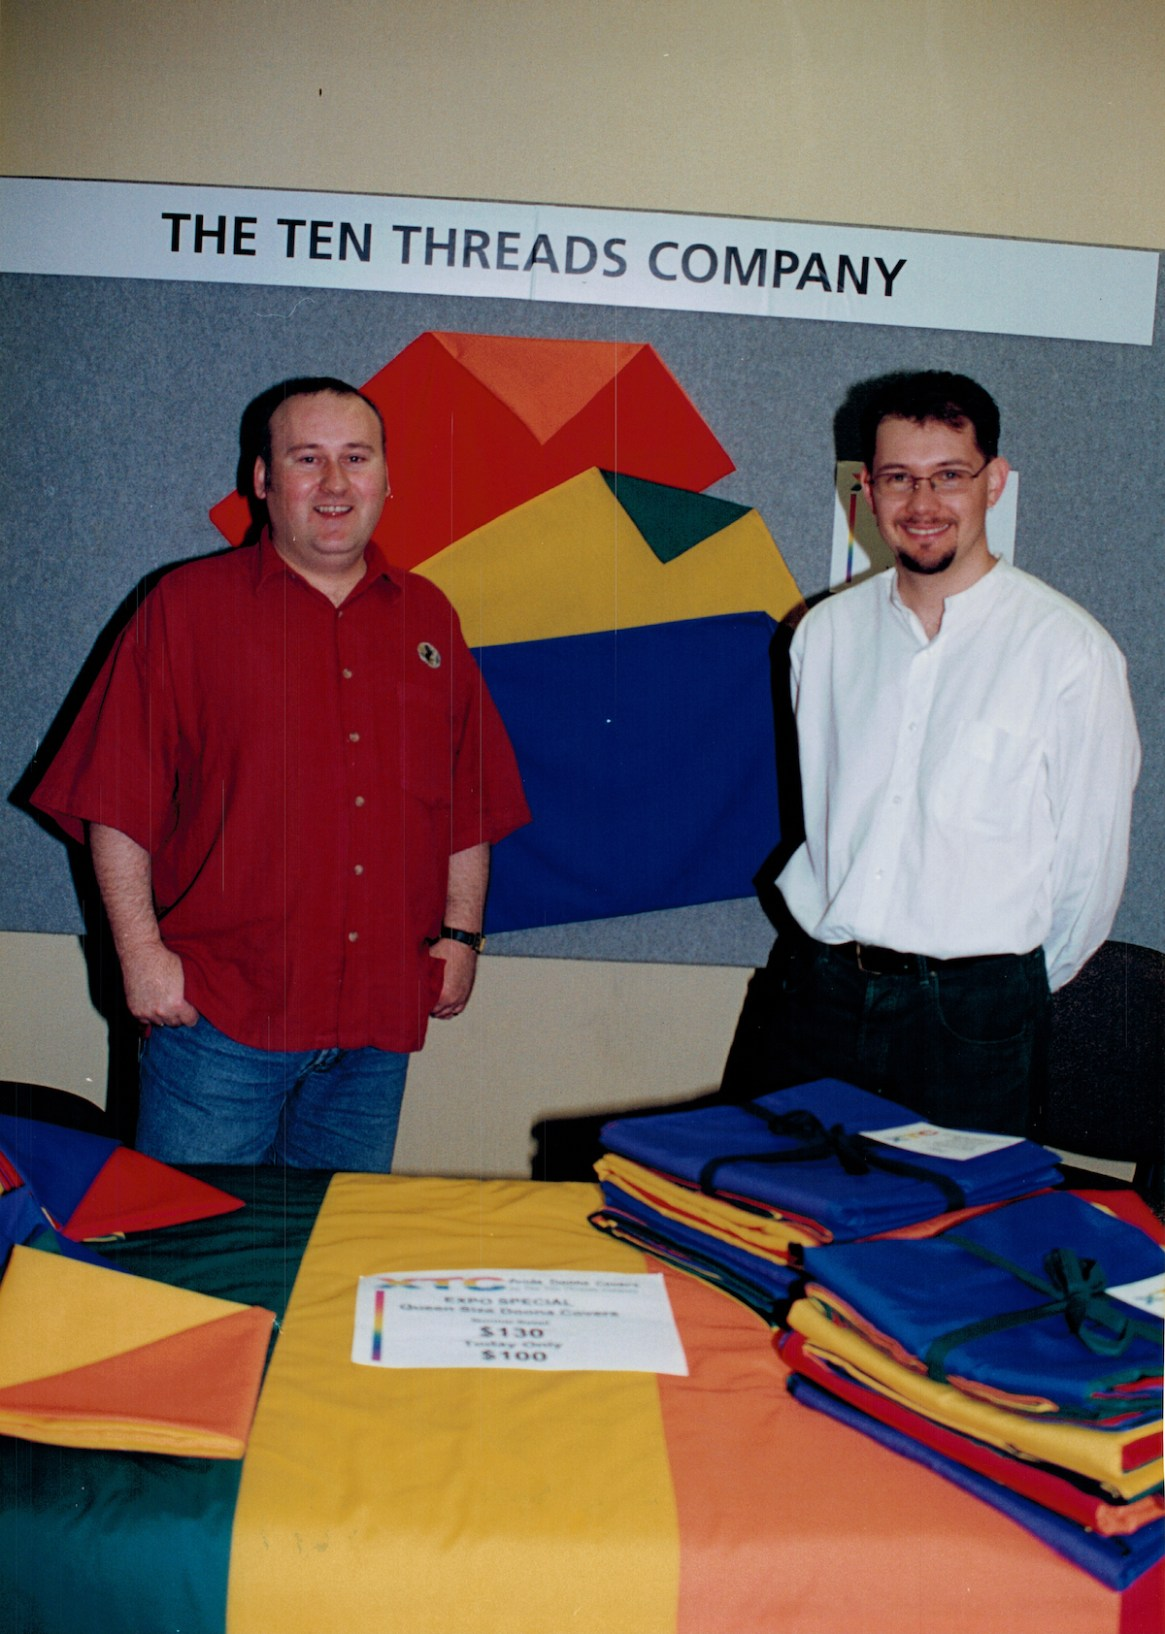 1997 SGLBA Business & Lifestyle Expo 4th October 53 (39 of 39)